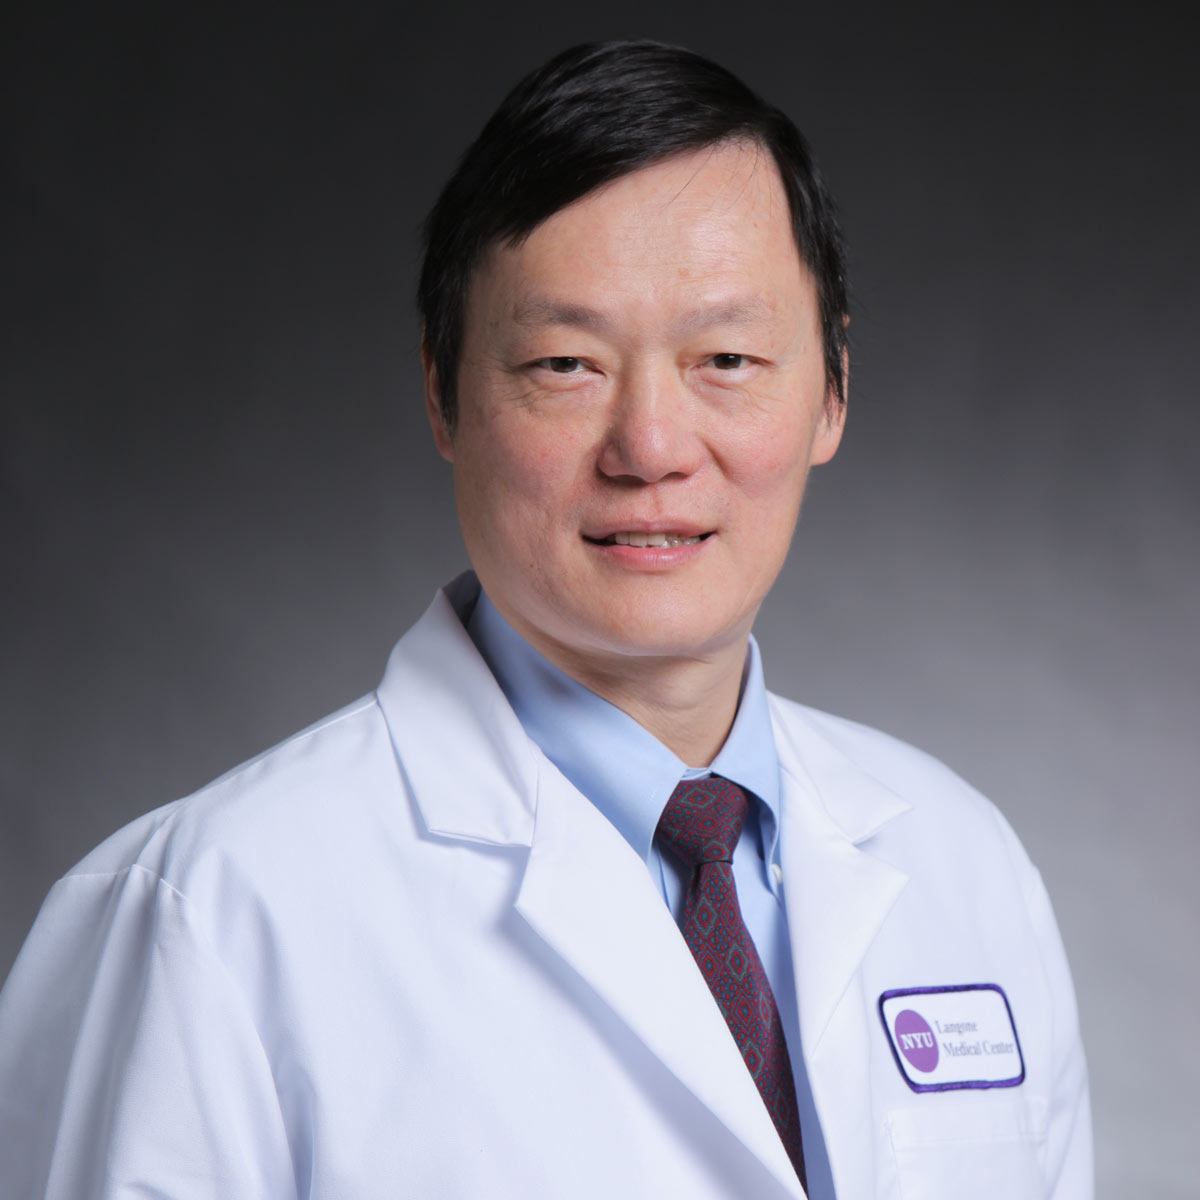 David Liu at [NYU Langone Medical Center]